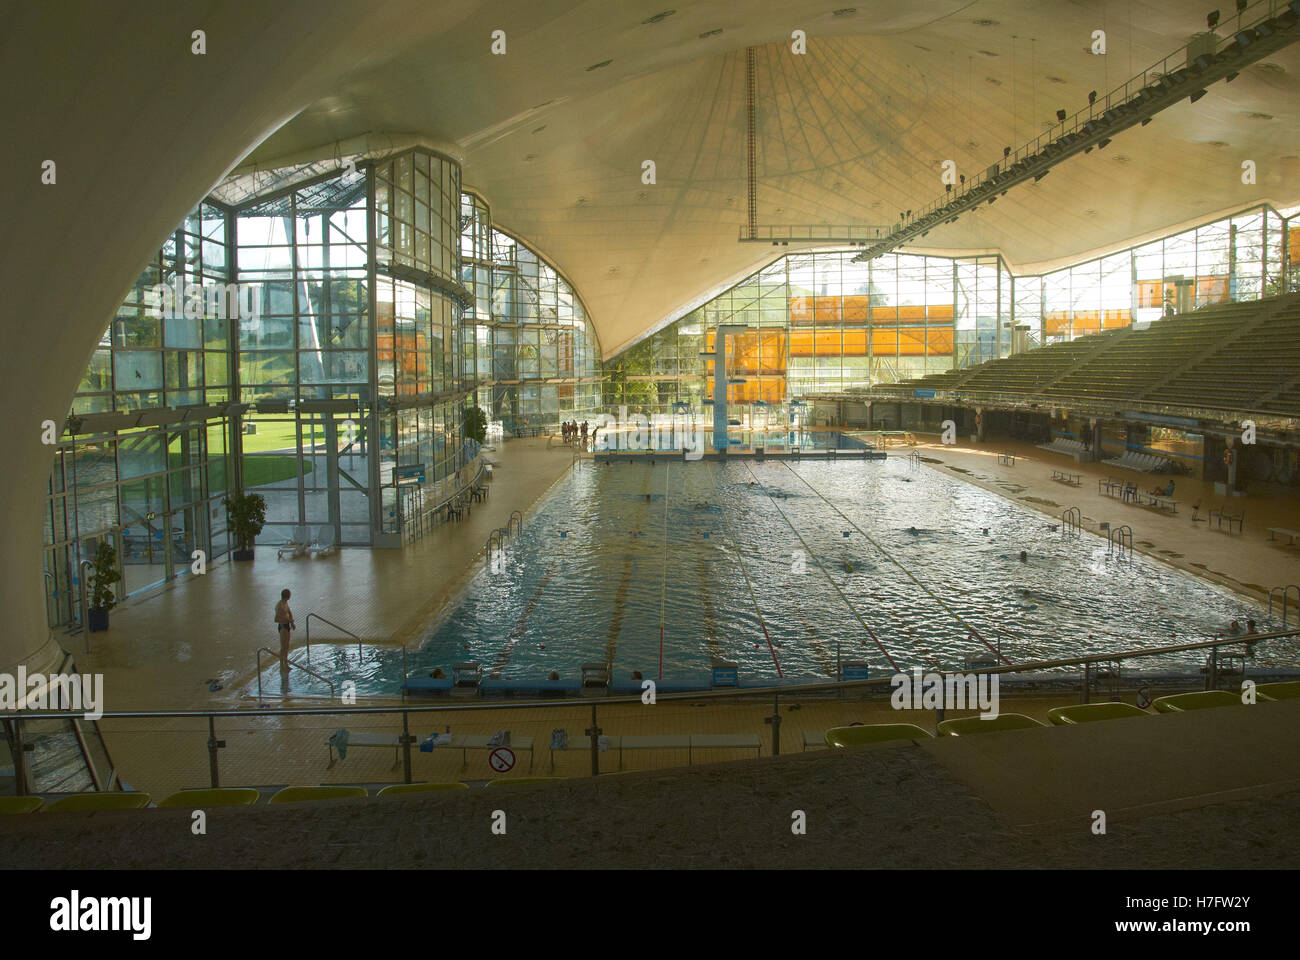 A Scene From The Munich Olympic Park Swimming Pool